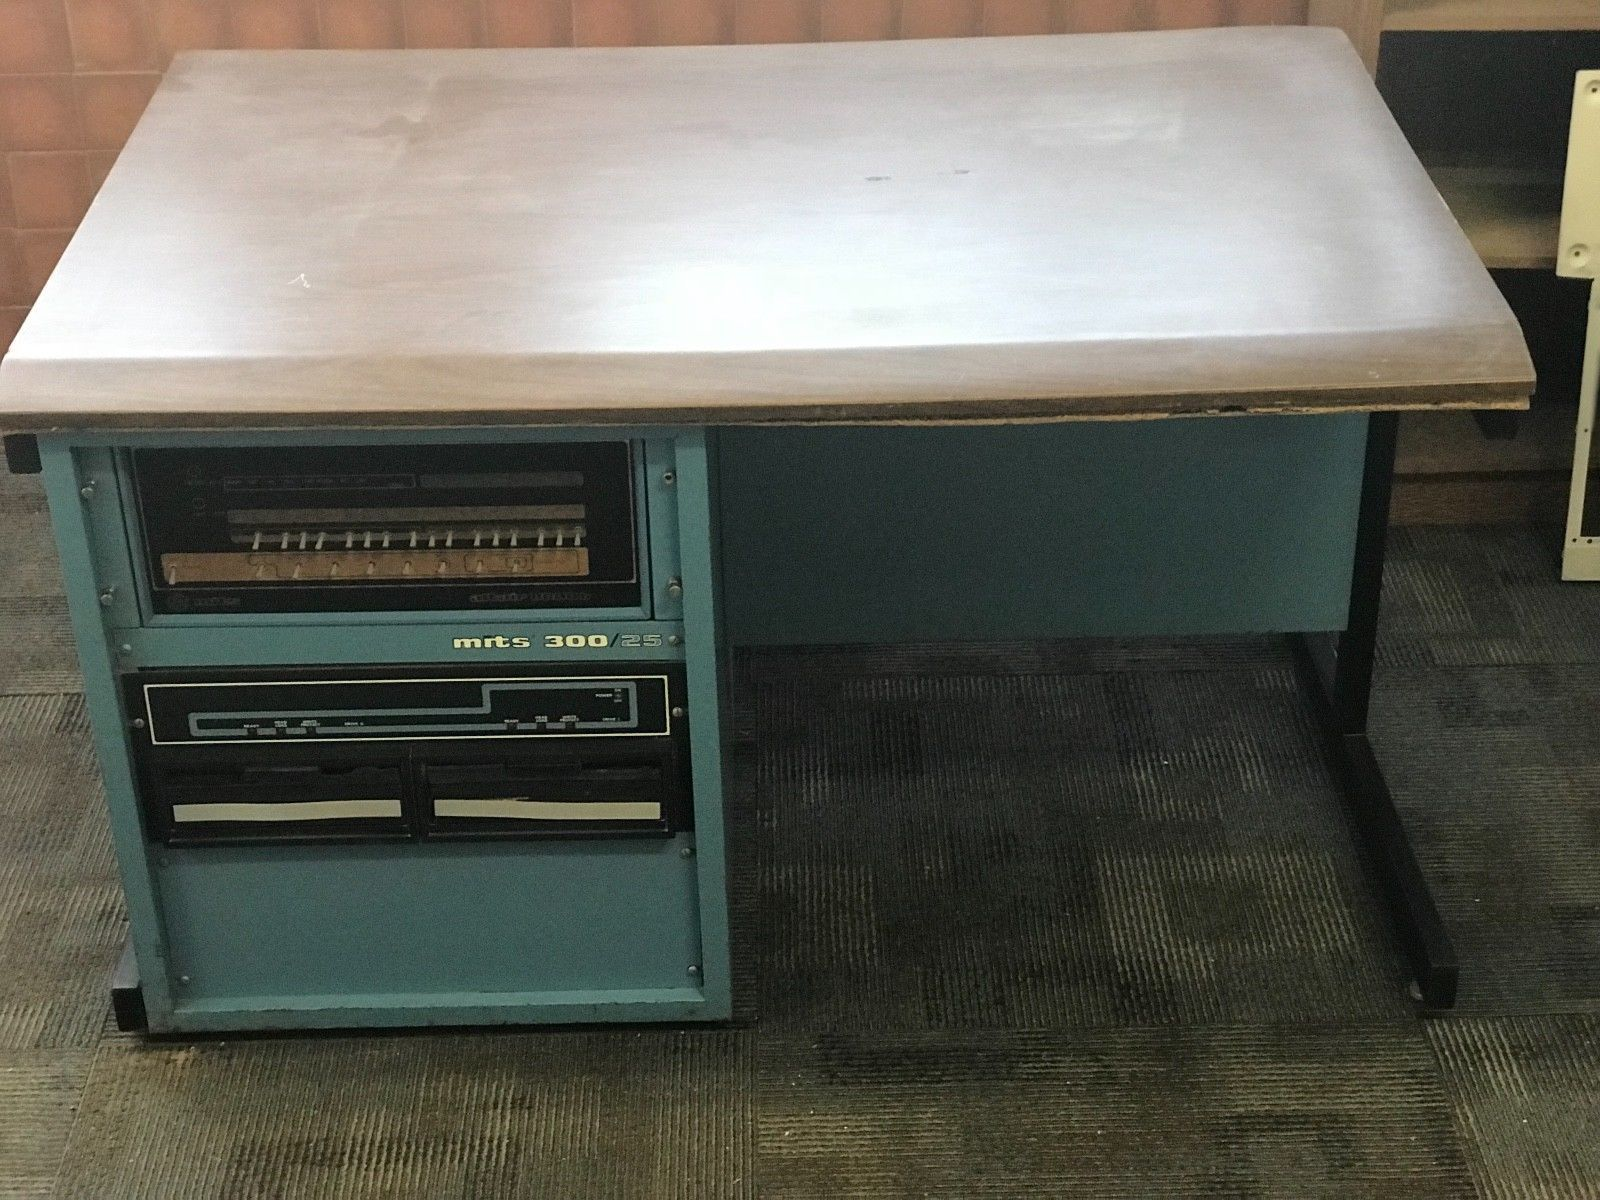 Altair 8800b Computer With Original Mits 300 25 Business